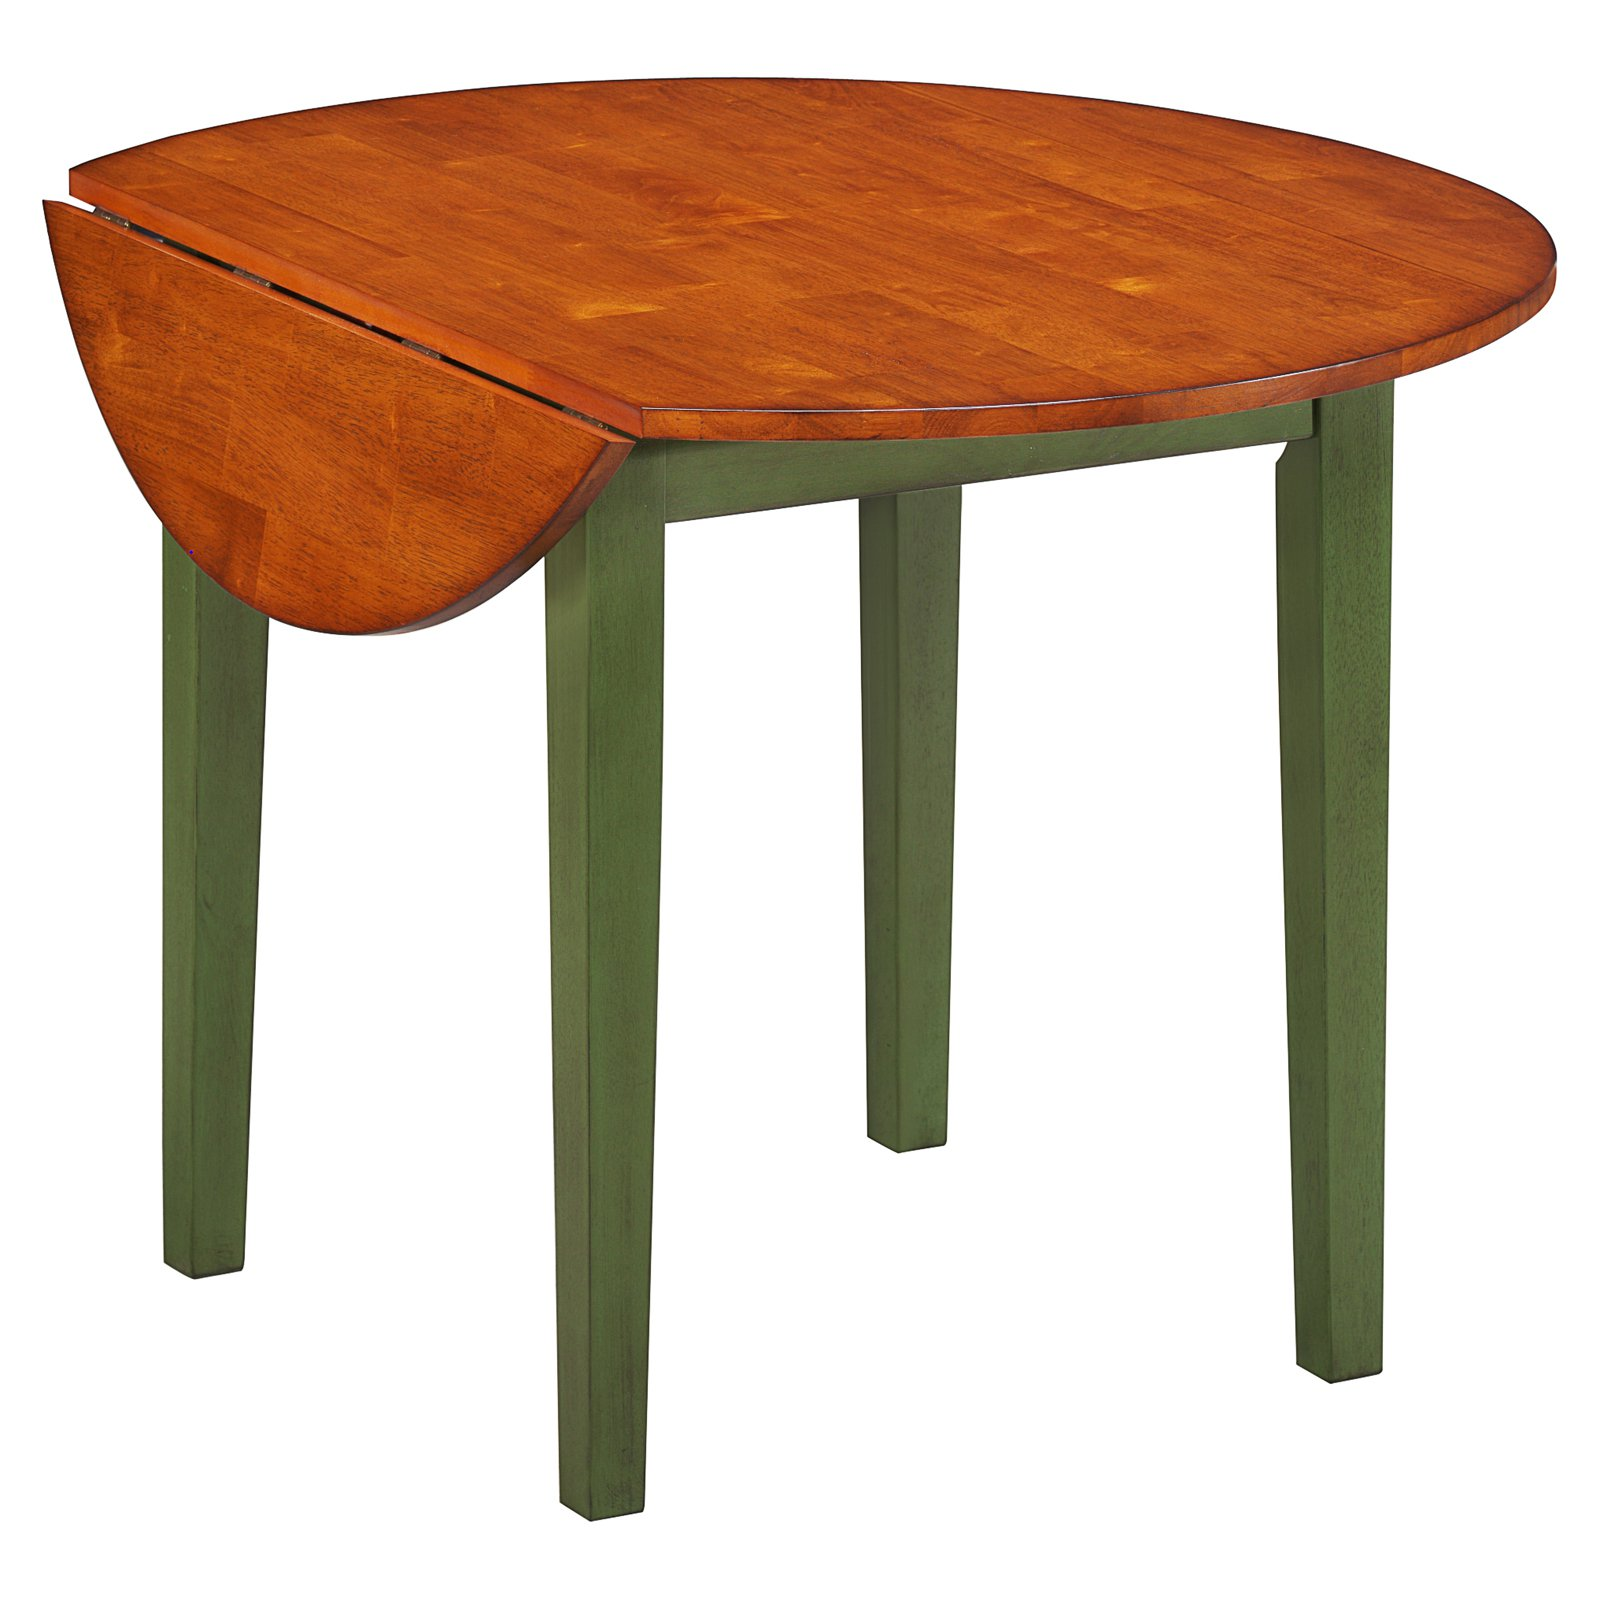 Imagio Home Drop Leaf Arlington Dining Table, Green and Java